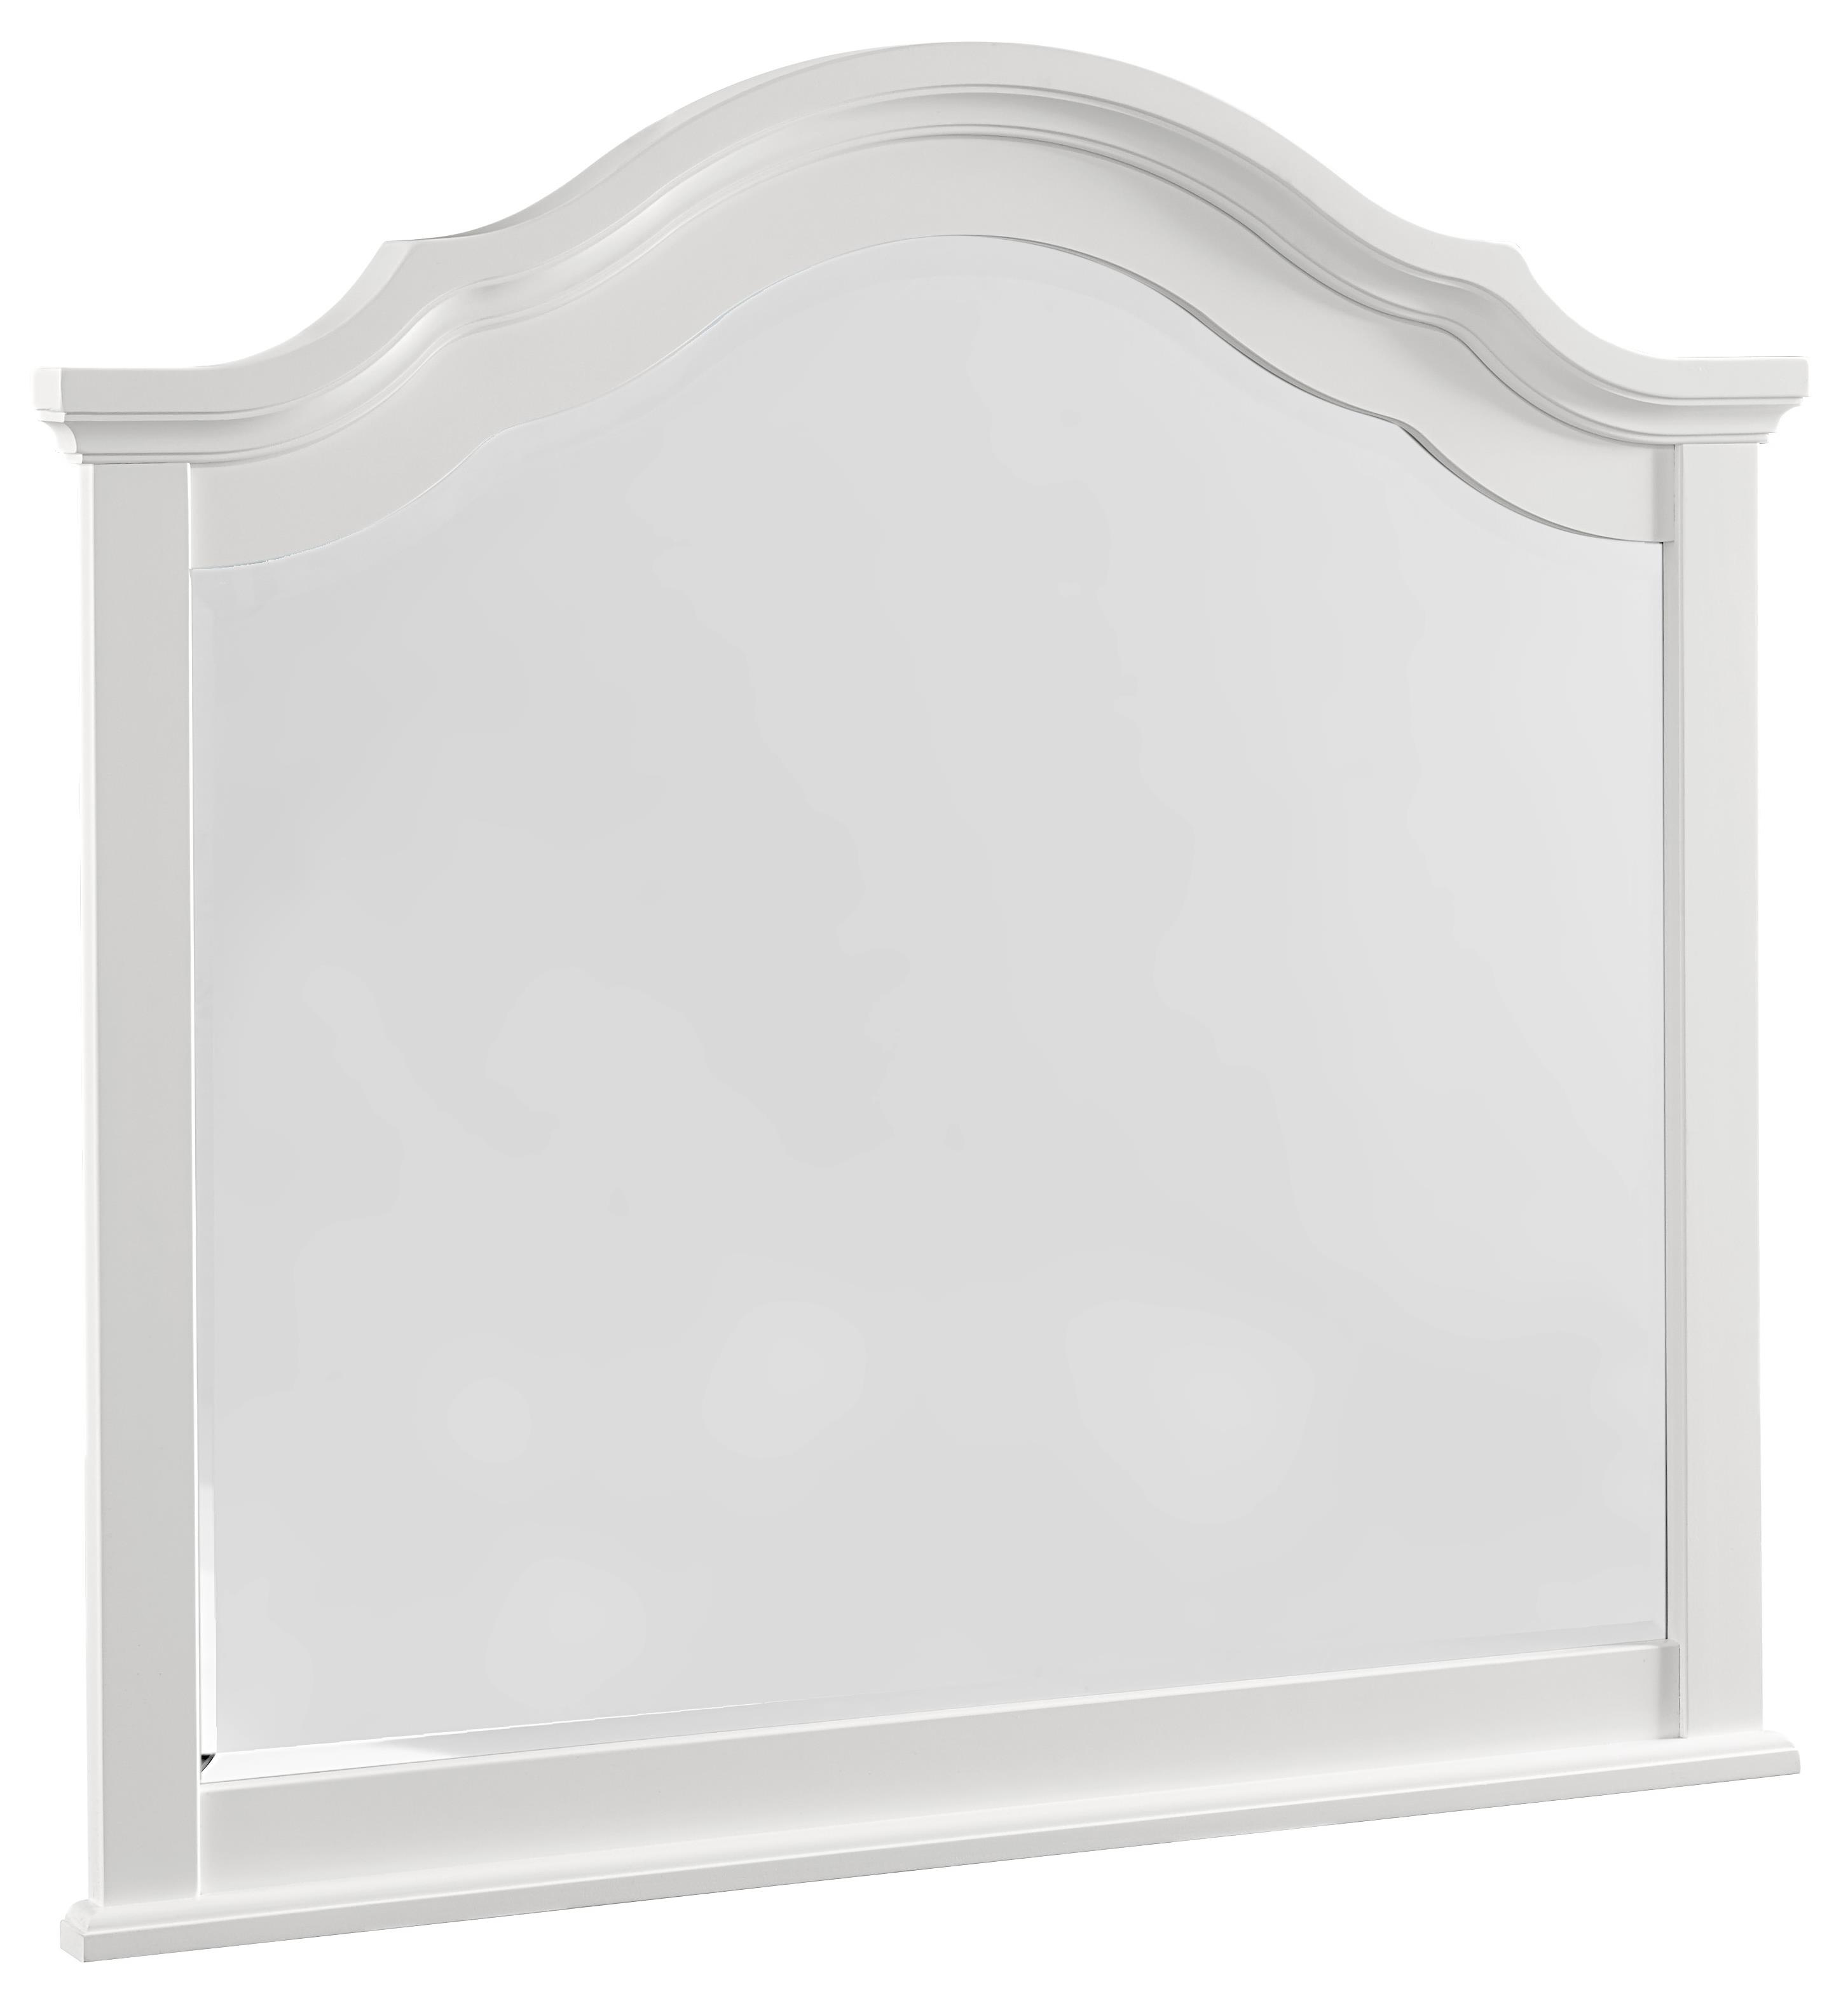 Vaughan Bassett French Market Arched Mirror - Item Number: 384-447